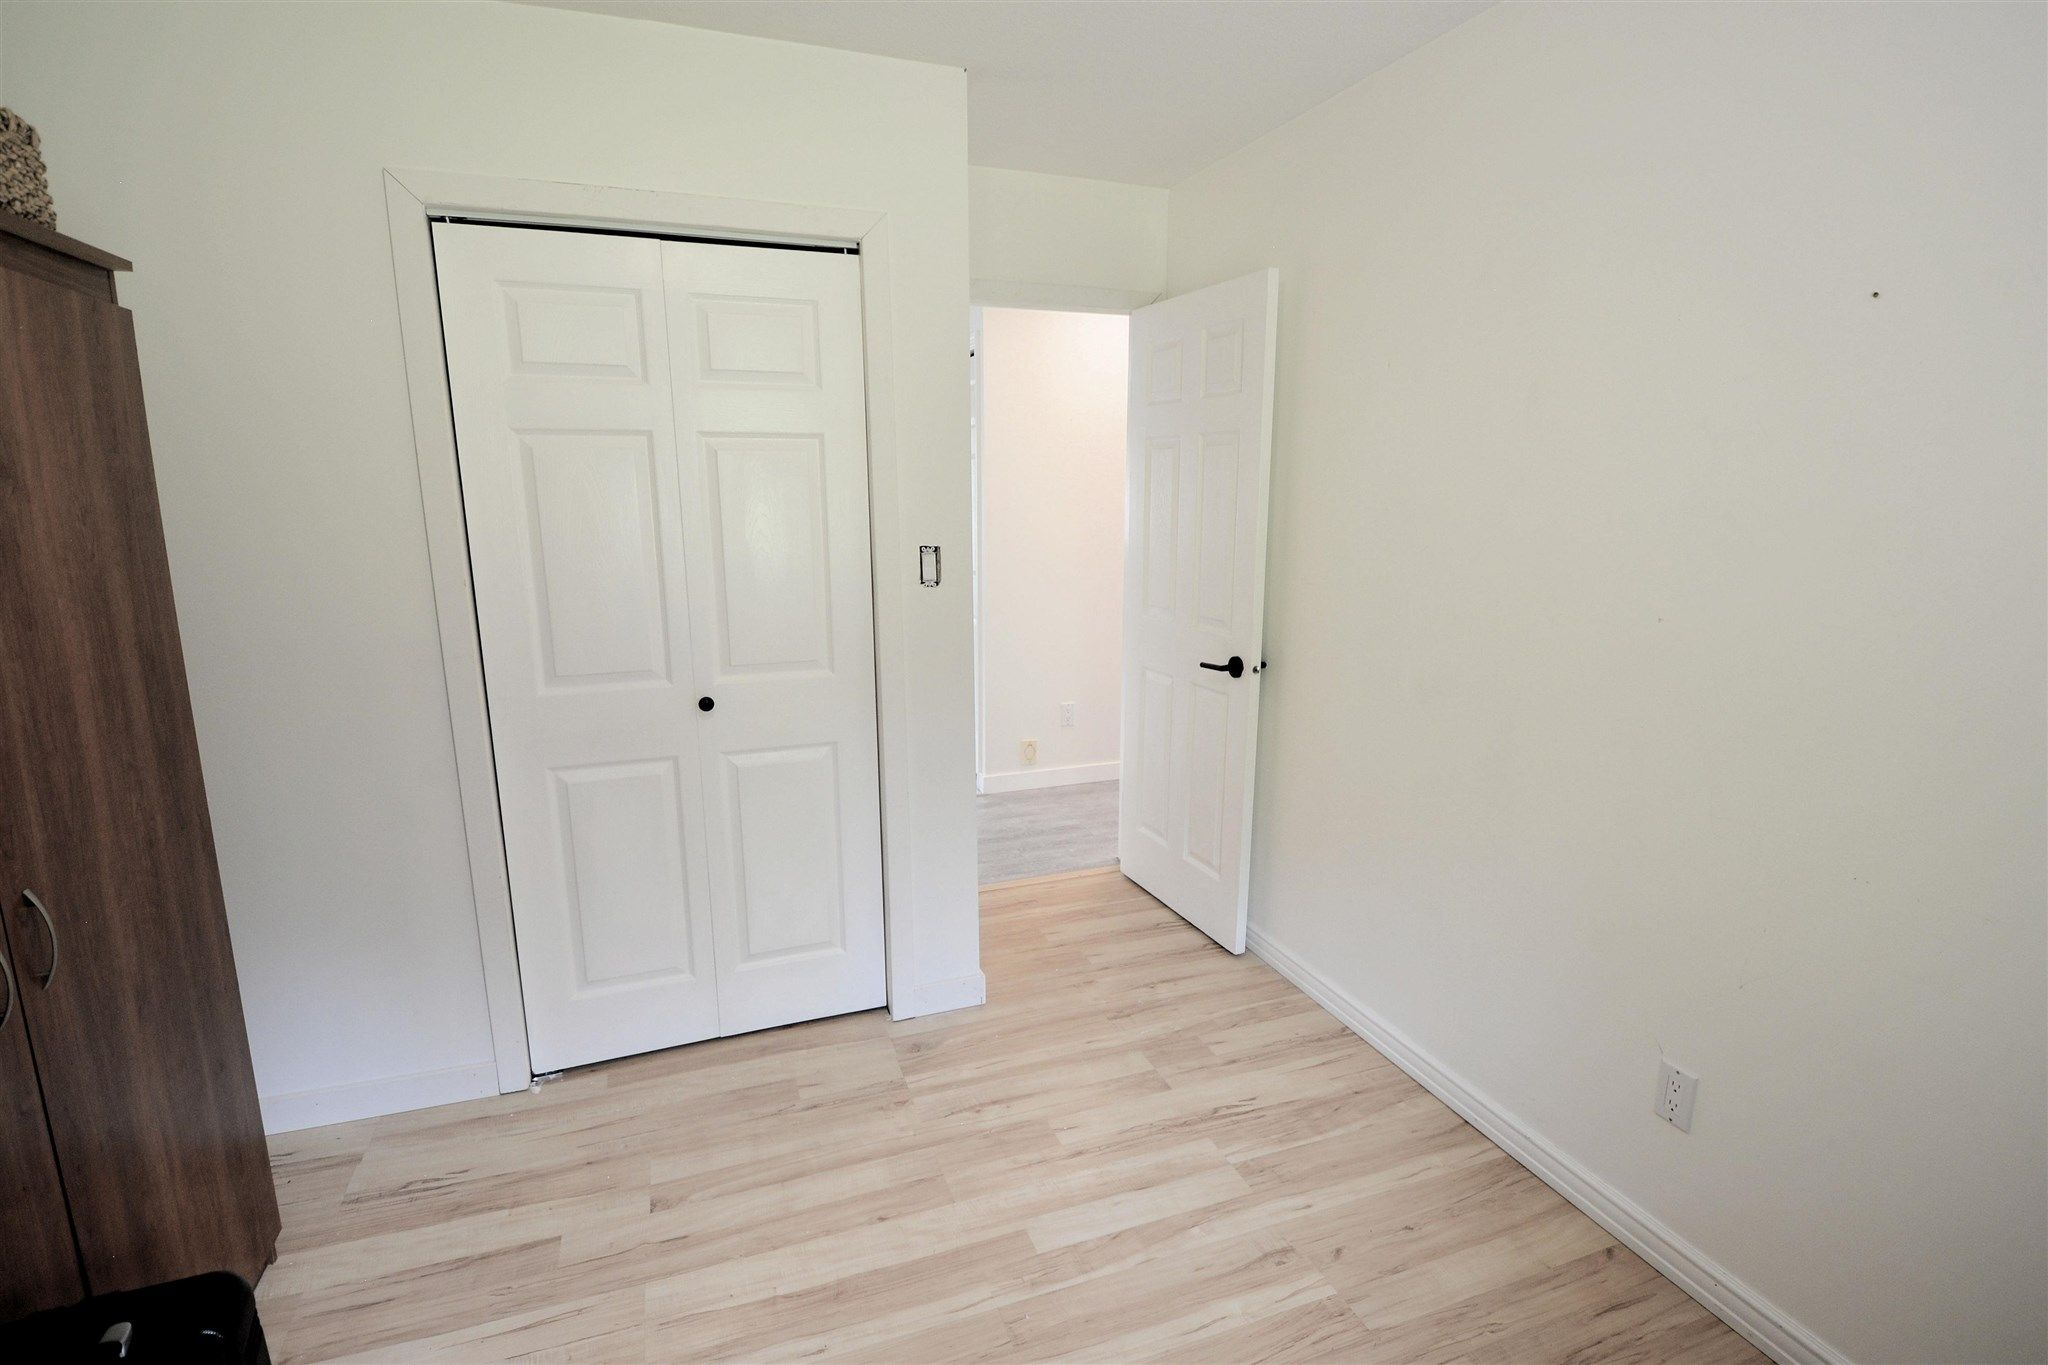 Photo 18: Photos: 2045 CROFT Road in Prince George: Ingala House for sale (PG City North (Zone 73))  : MLS®# R2600190